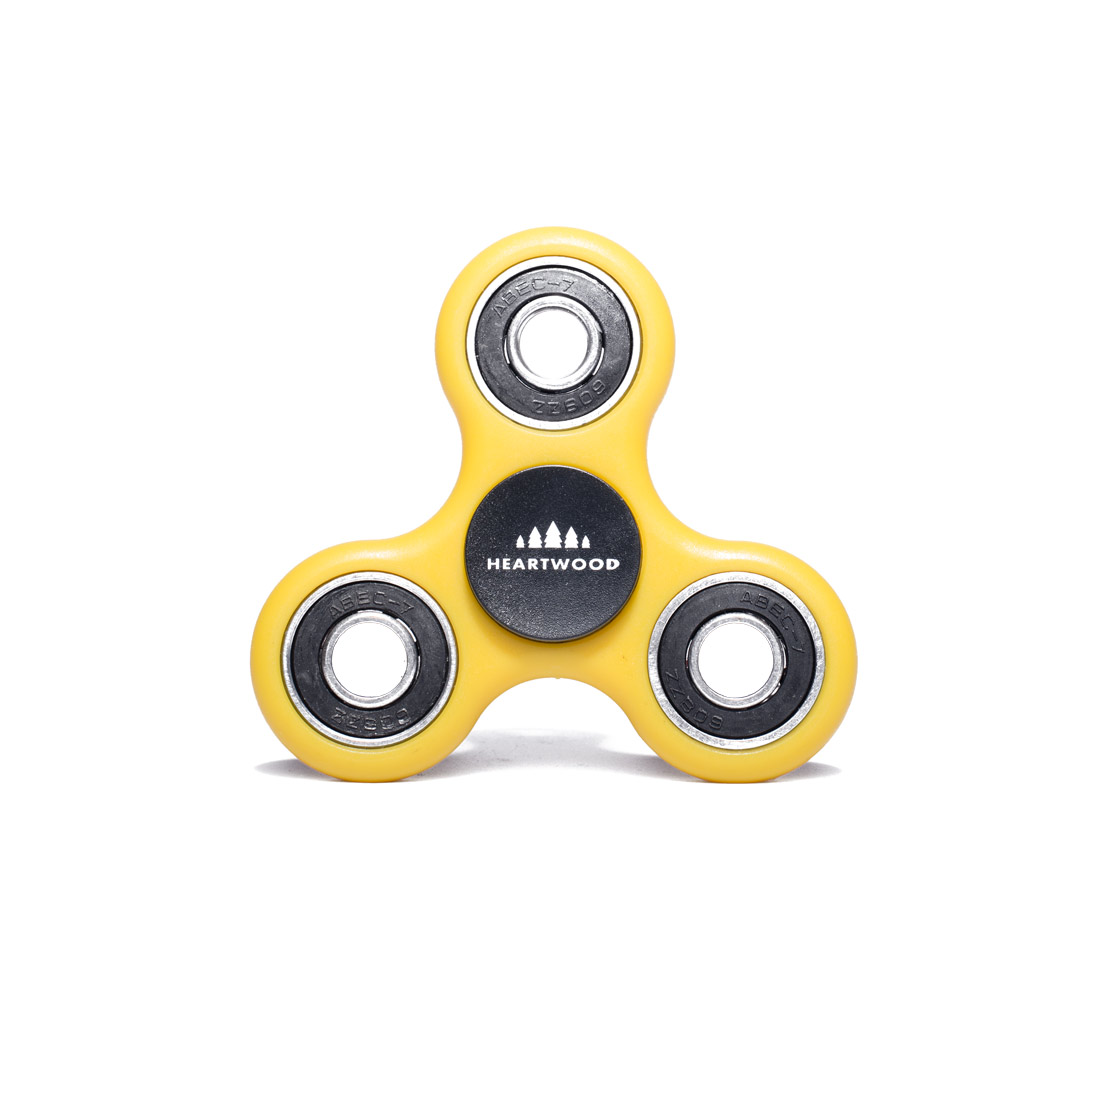 Heartwood Fidget Spinner Standard Yellow